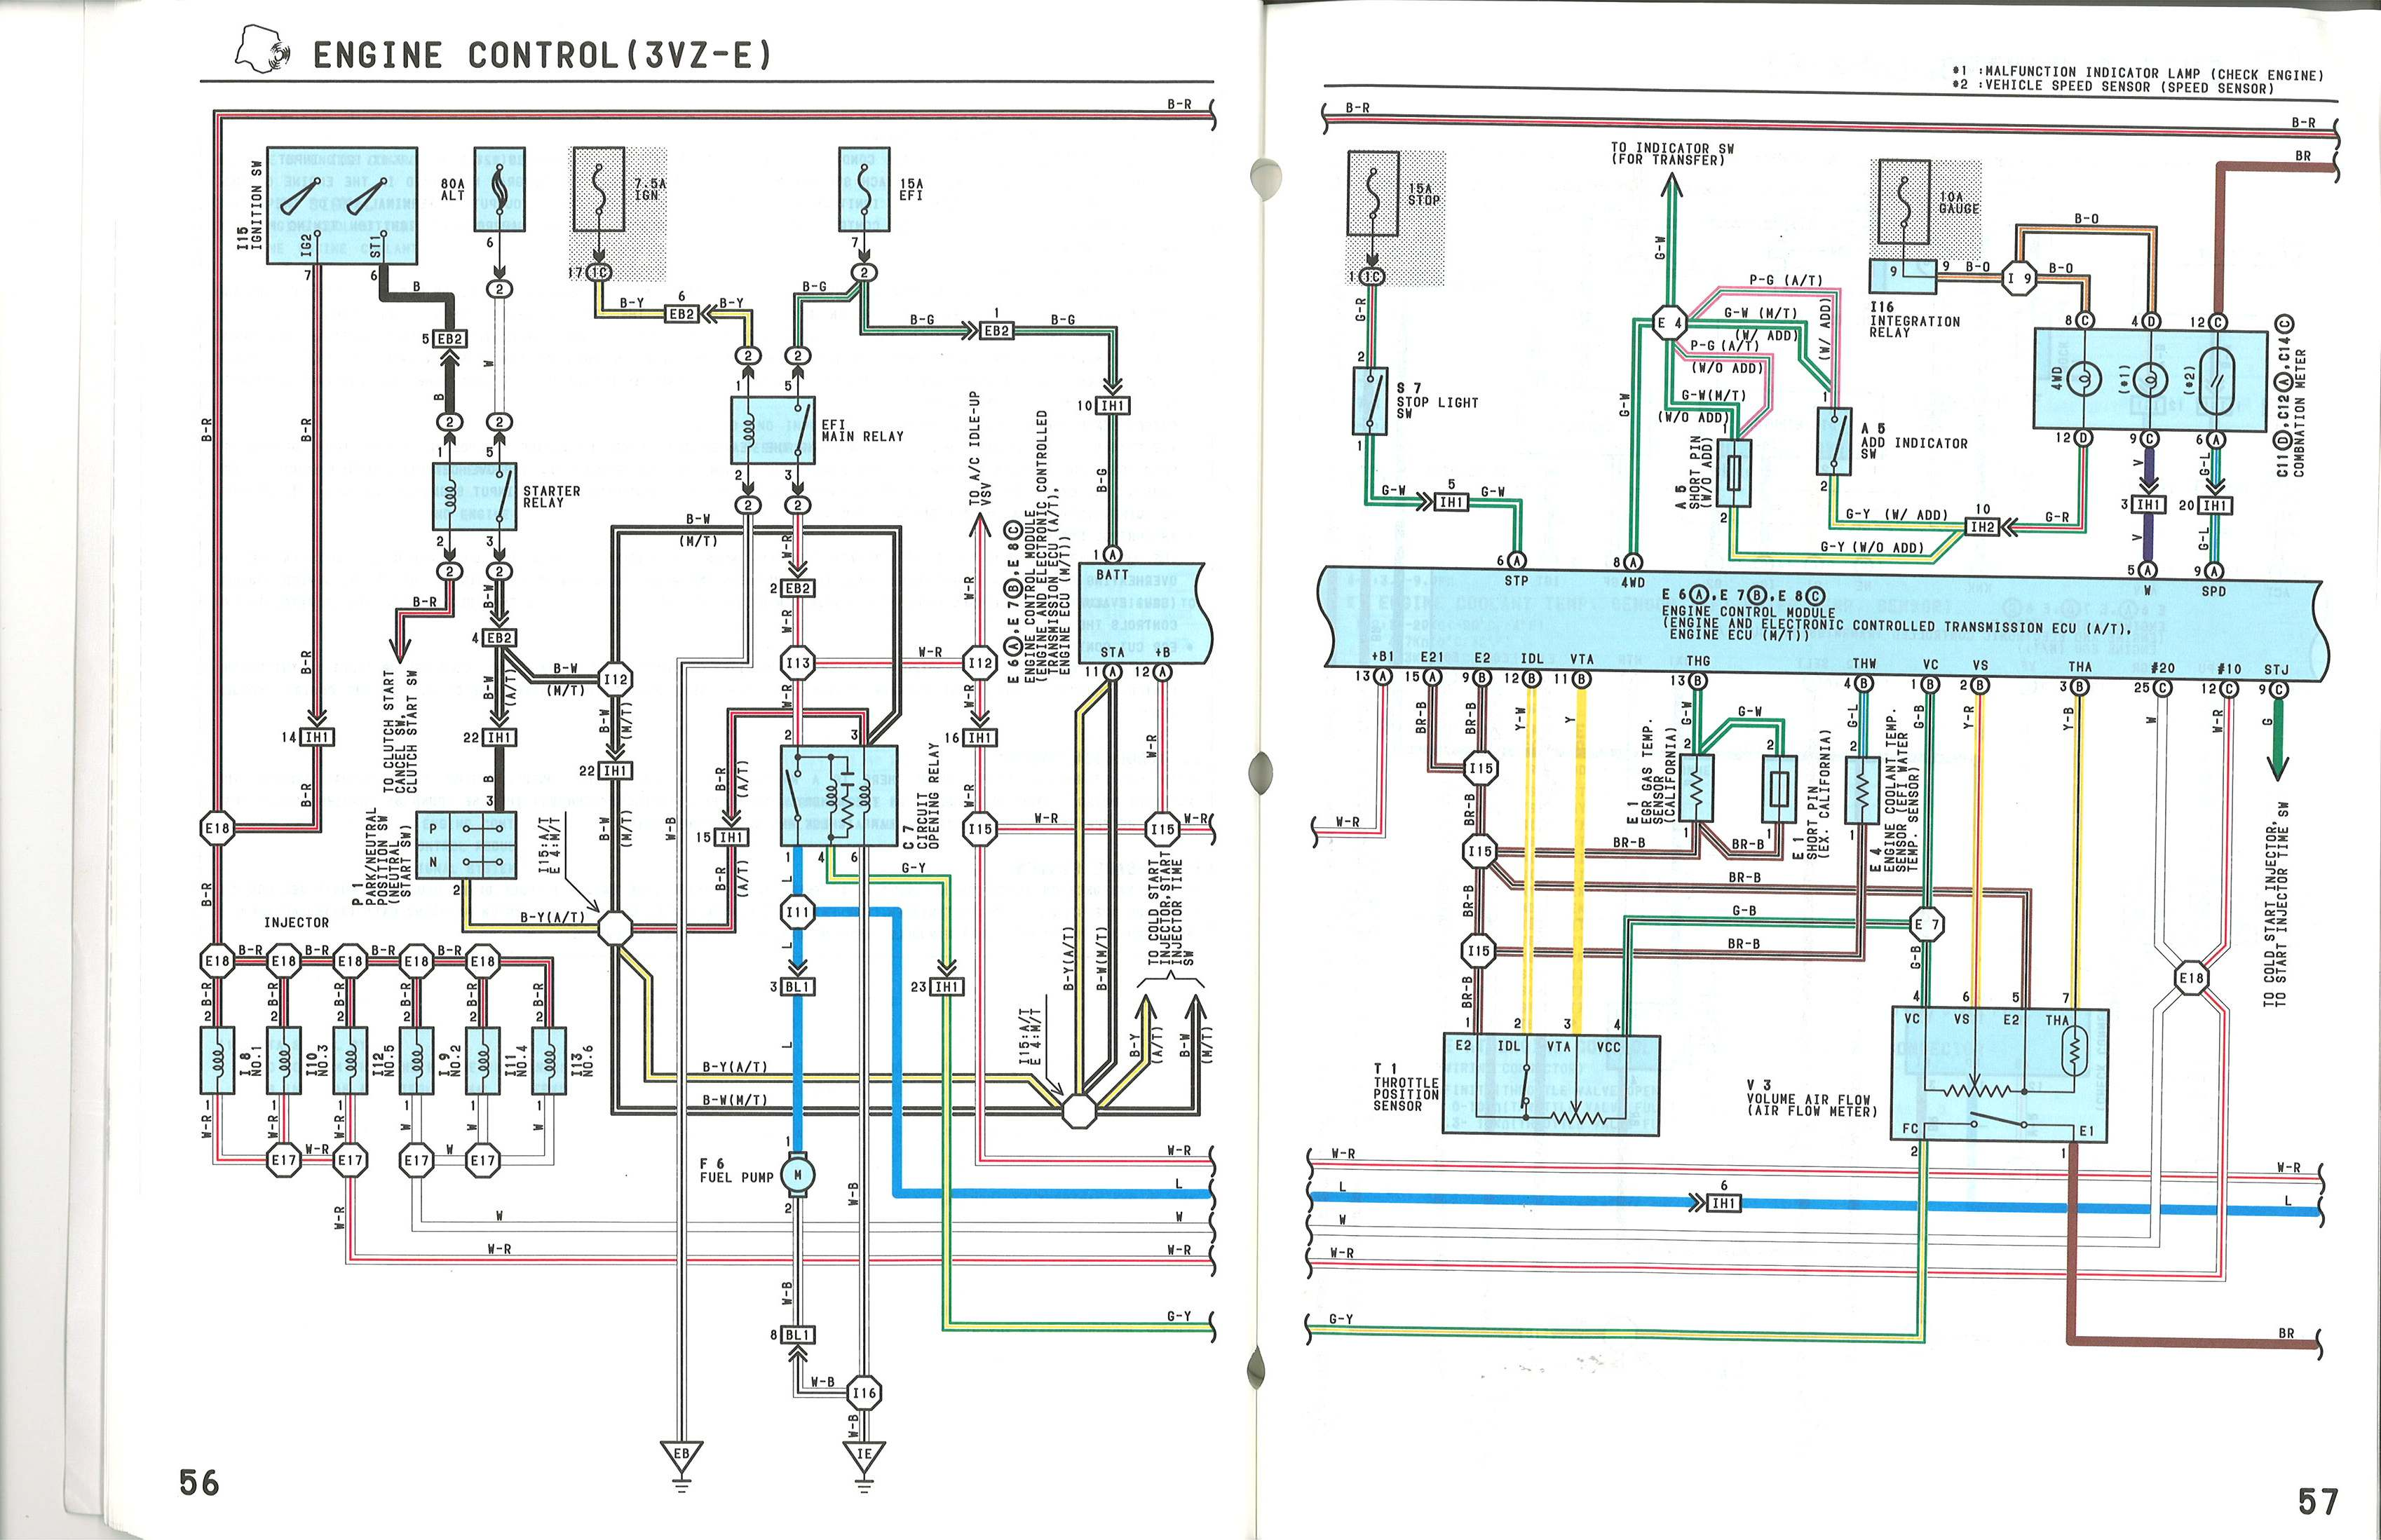 1991 toyota 4runner stereo wiring diagram 2 humbucker cressida engine